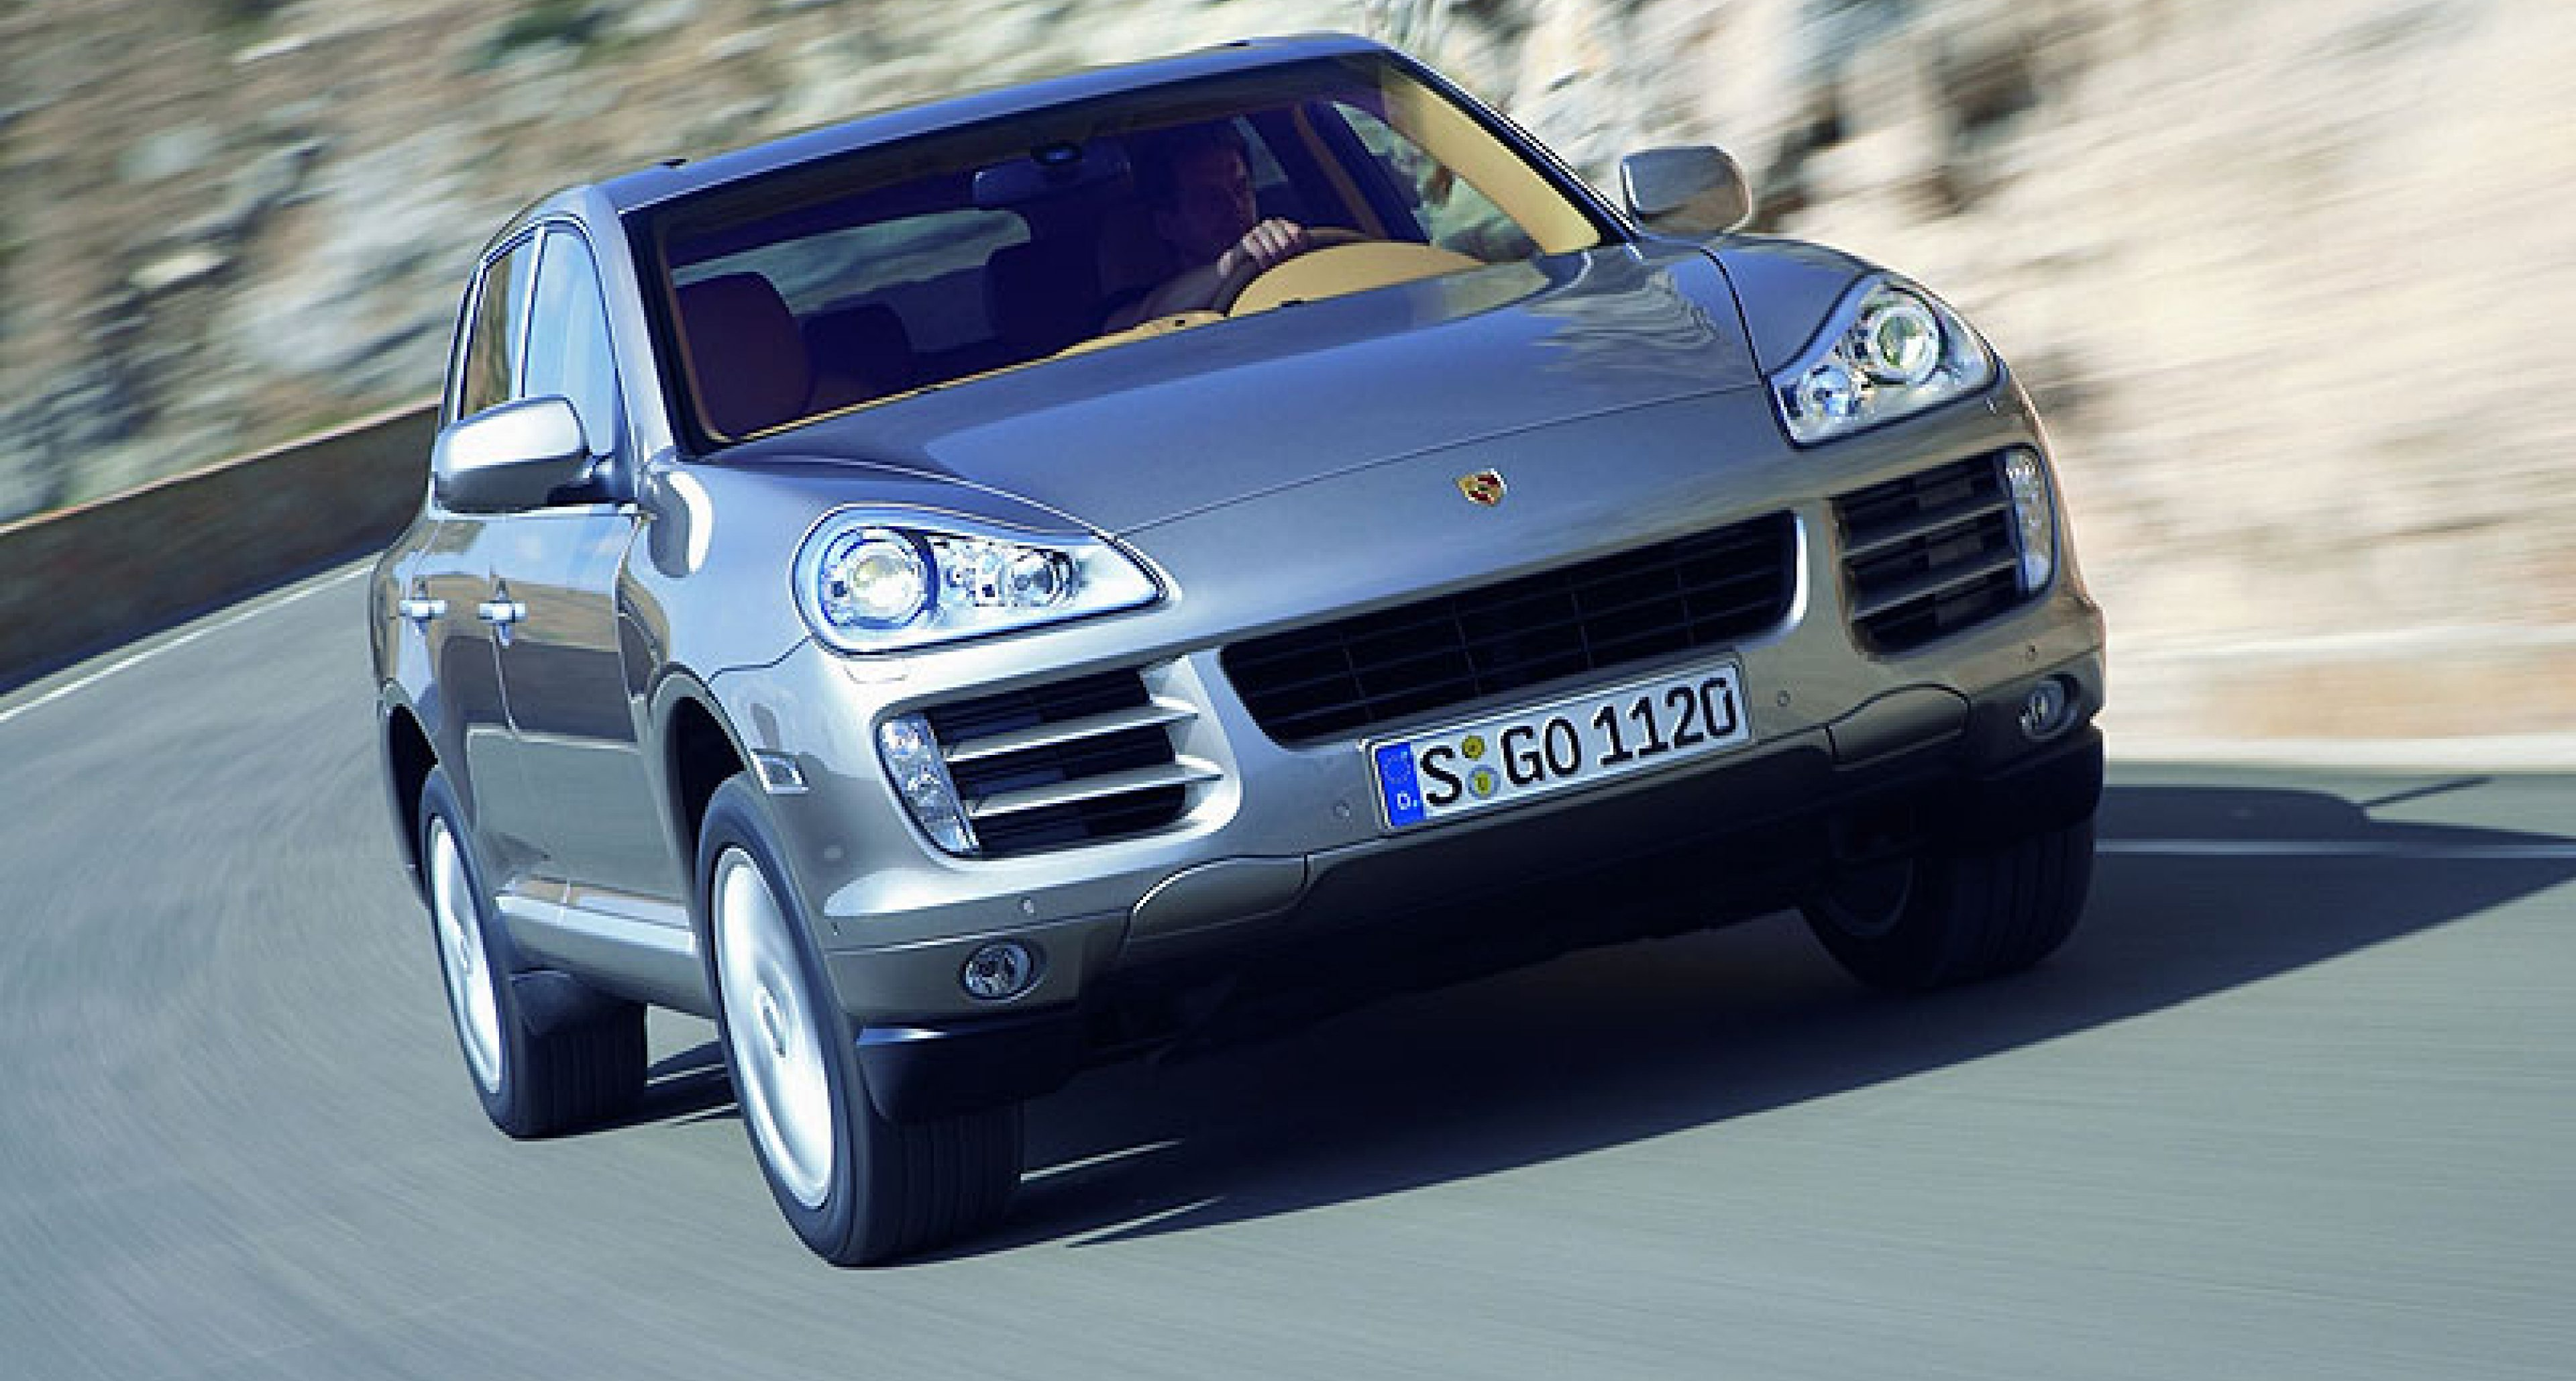 Facelift for Porsche Cayenne